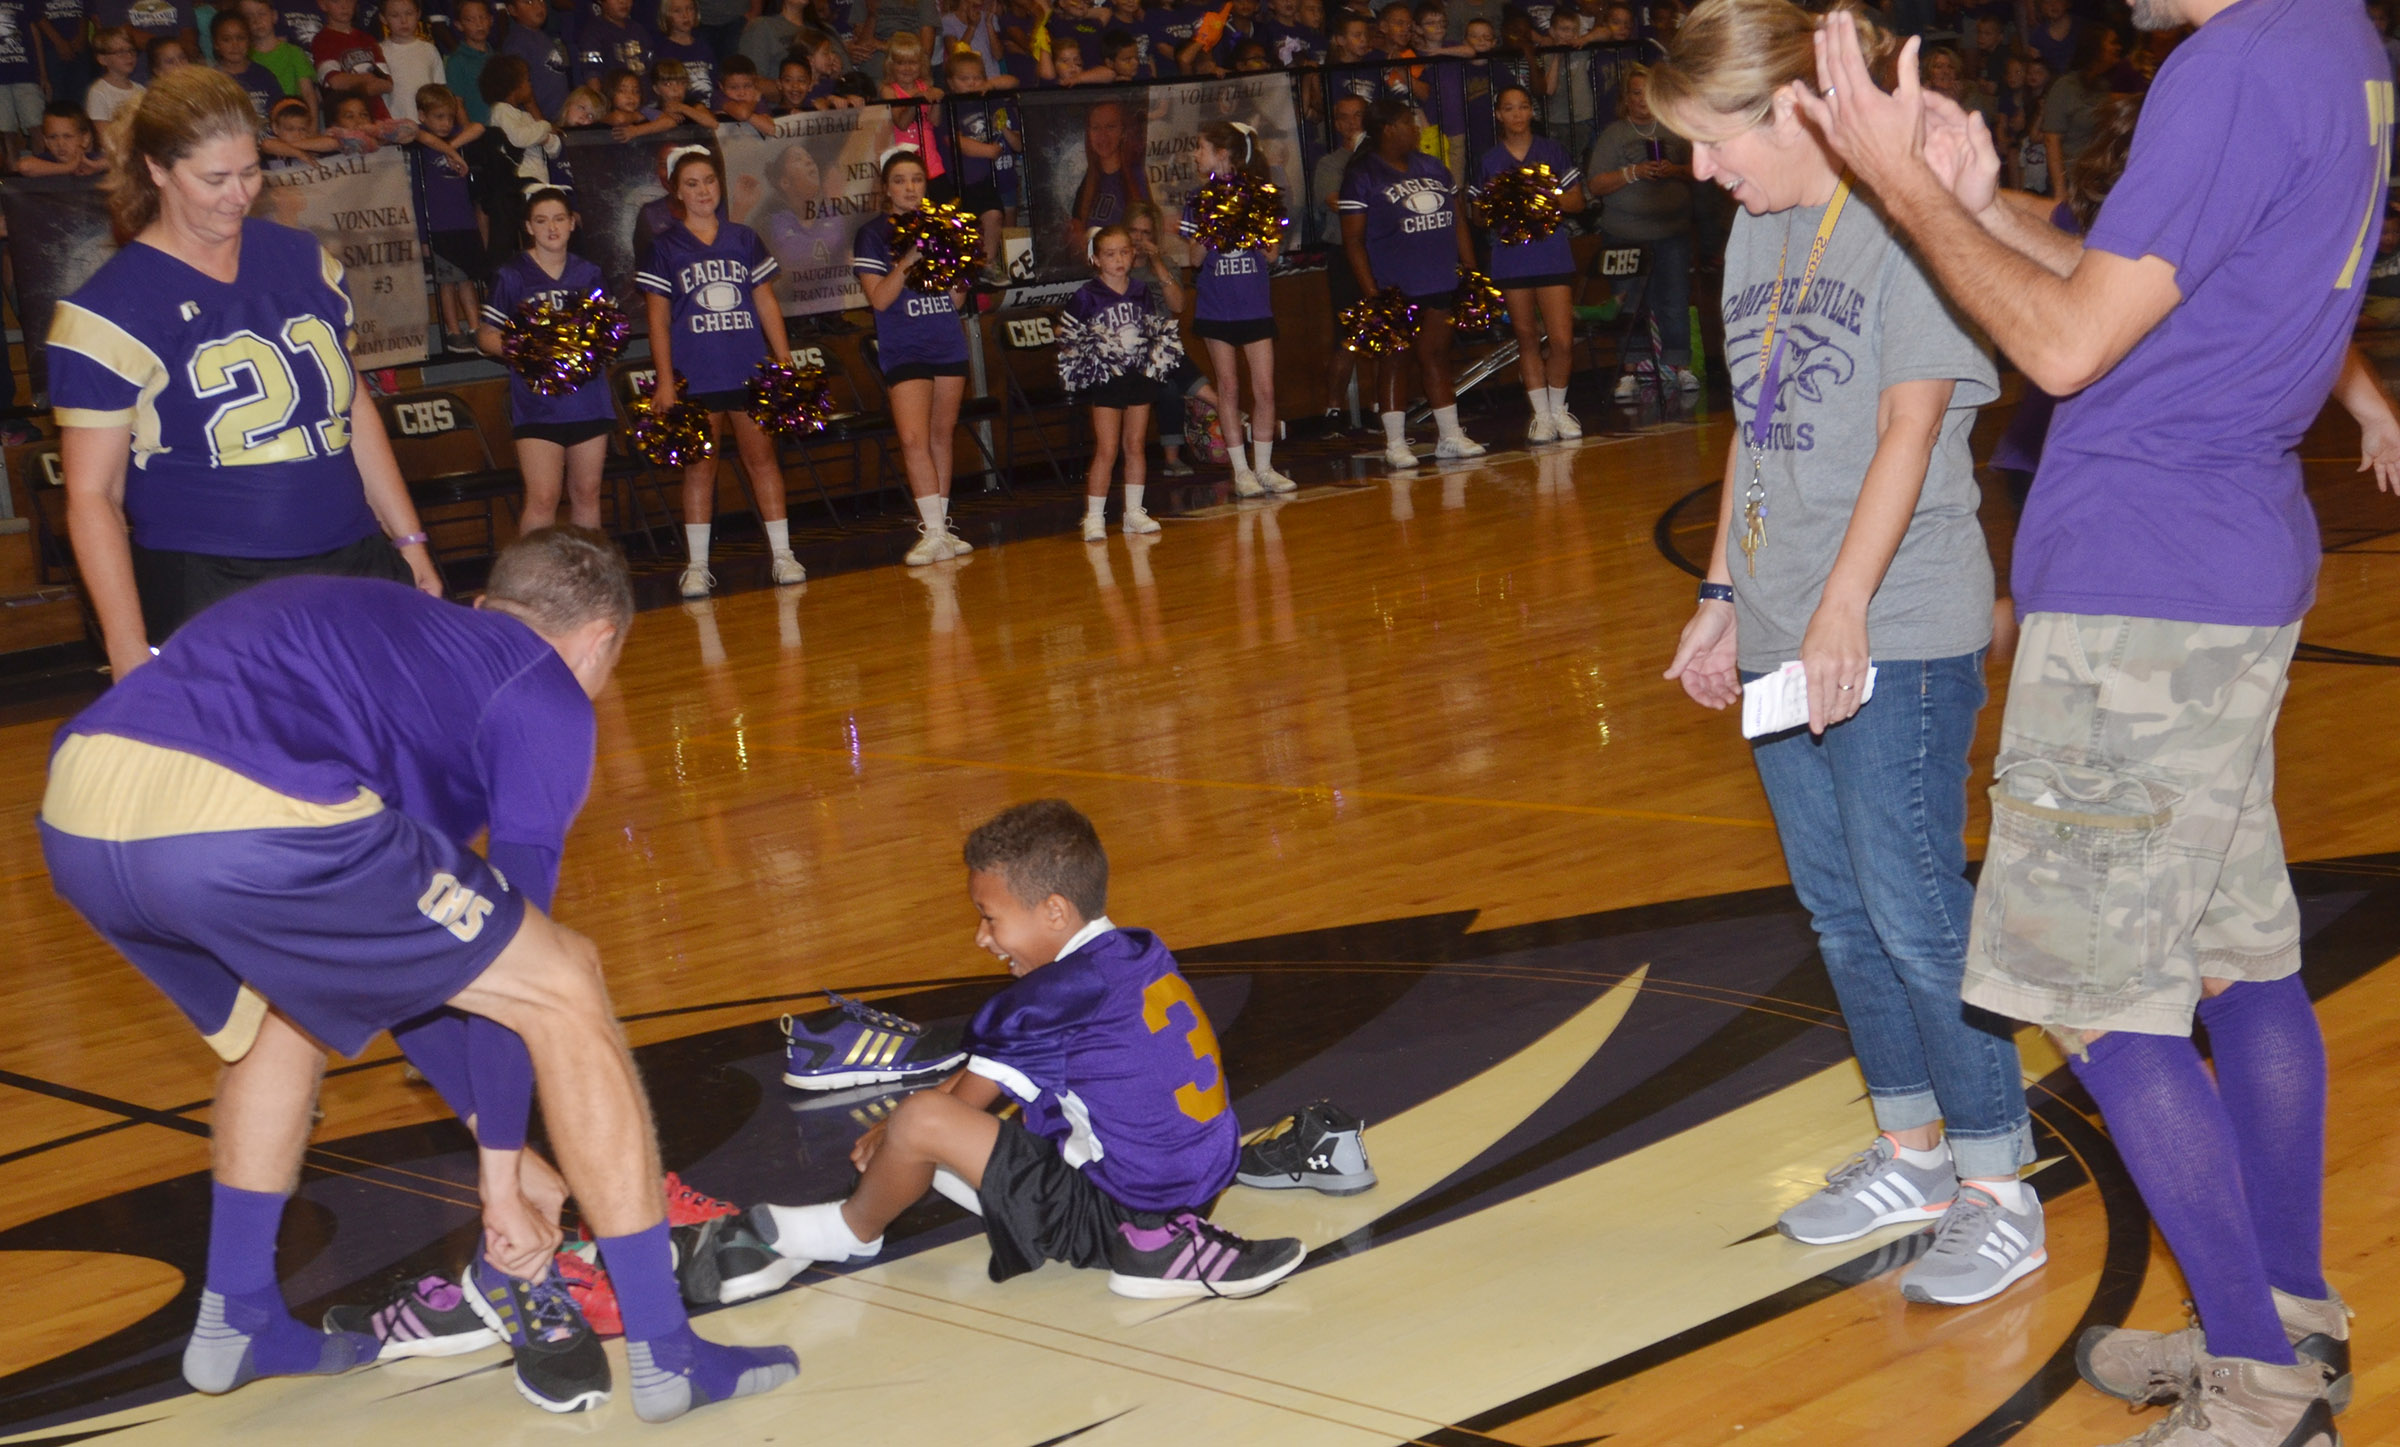 CHS senior Connor Wilson, at left, and CES third-grader Rajon Taylor compete in the shoe mountain game.